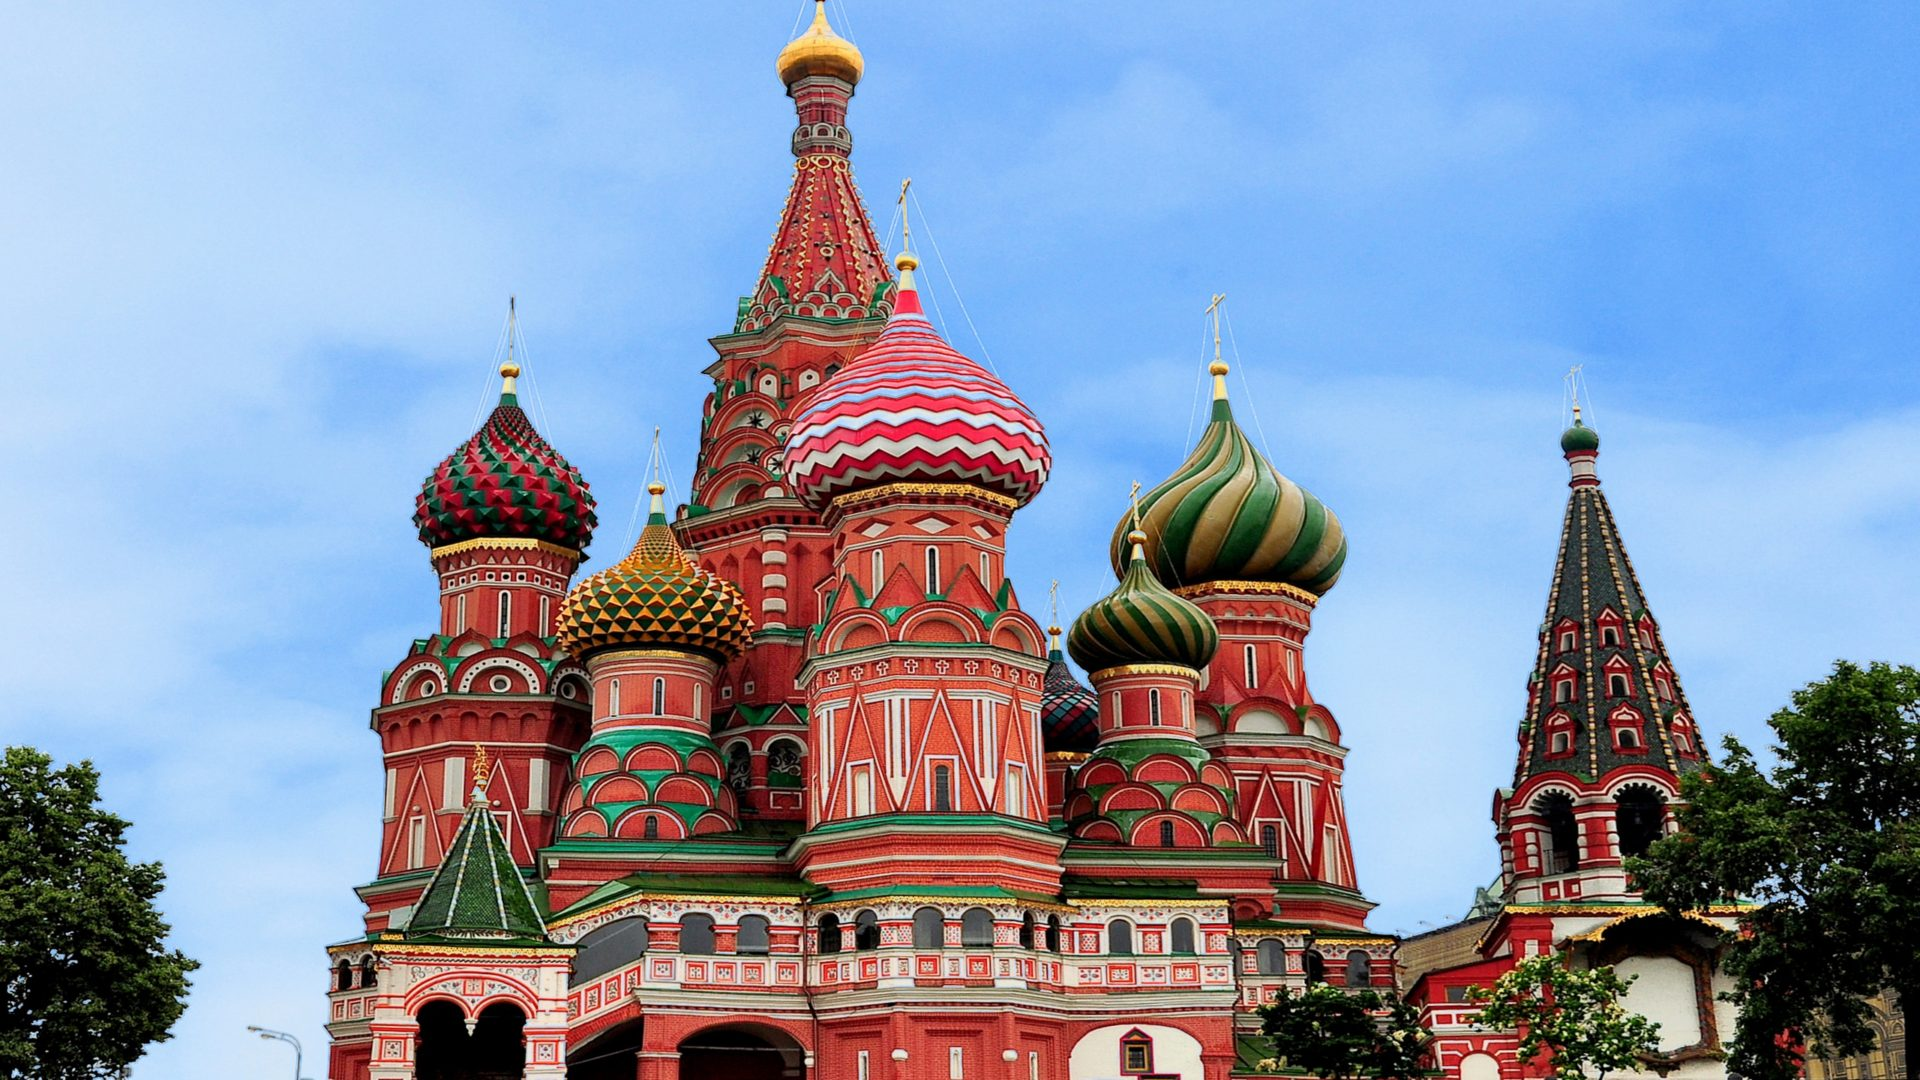 Castle Wallpaper Iphone St Basil S Cathedral Red Square Moscow 59831464